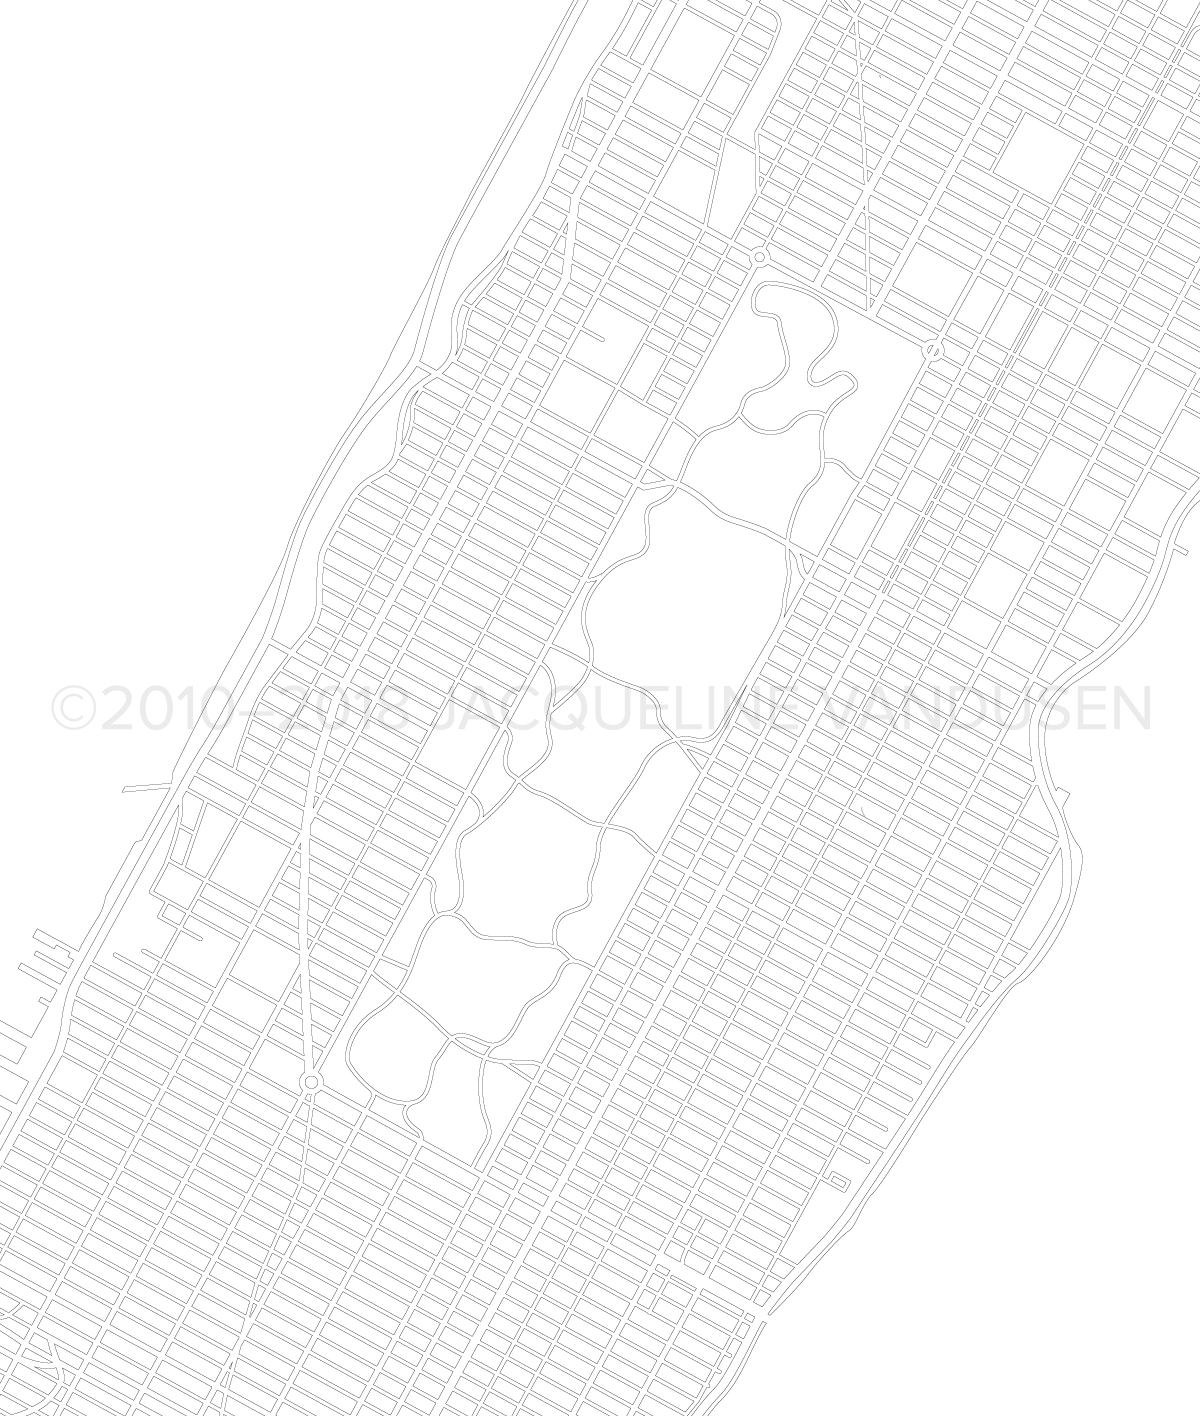 Manhattan Map (Close-up of Central Park)